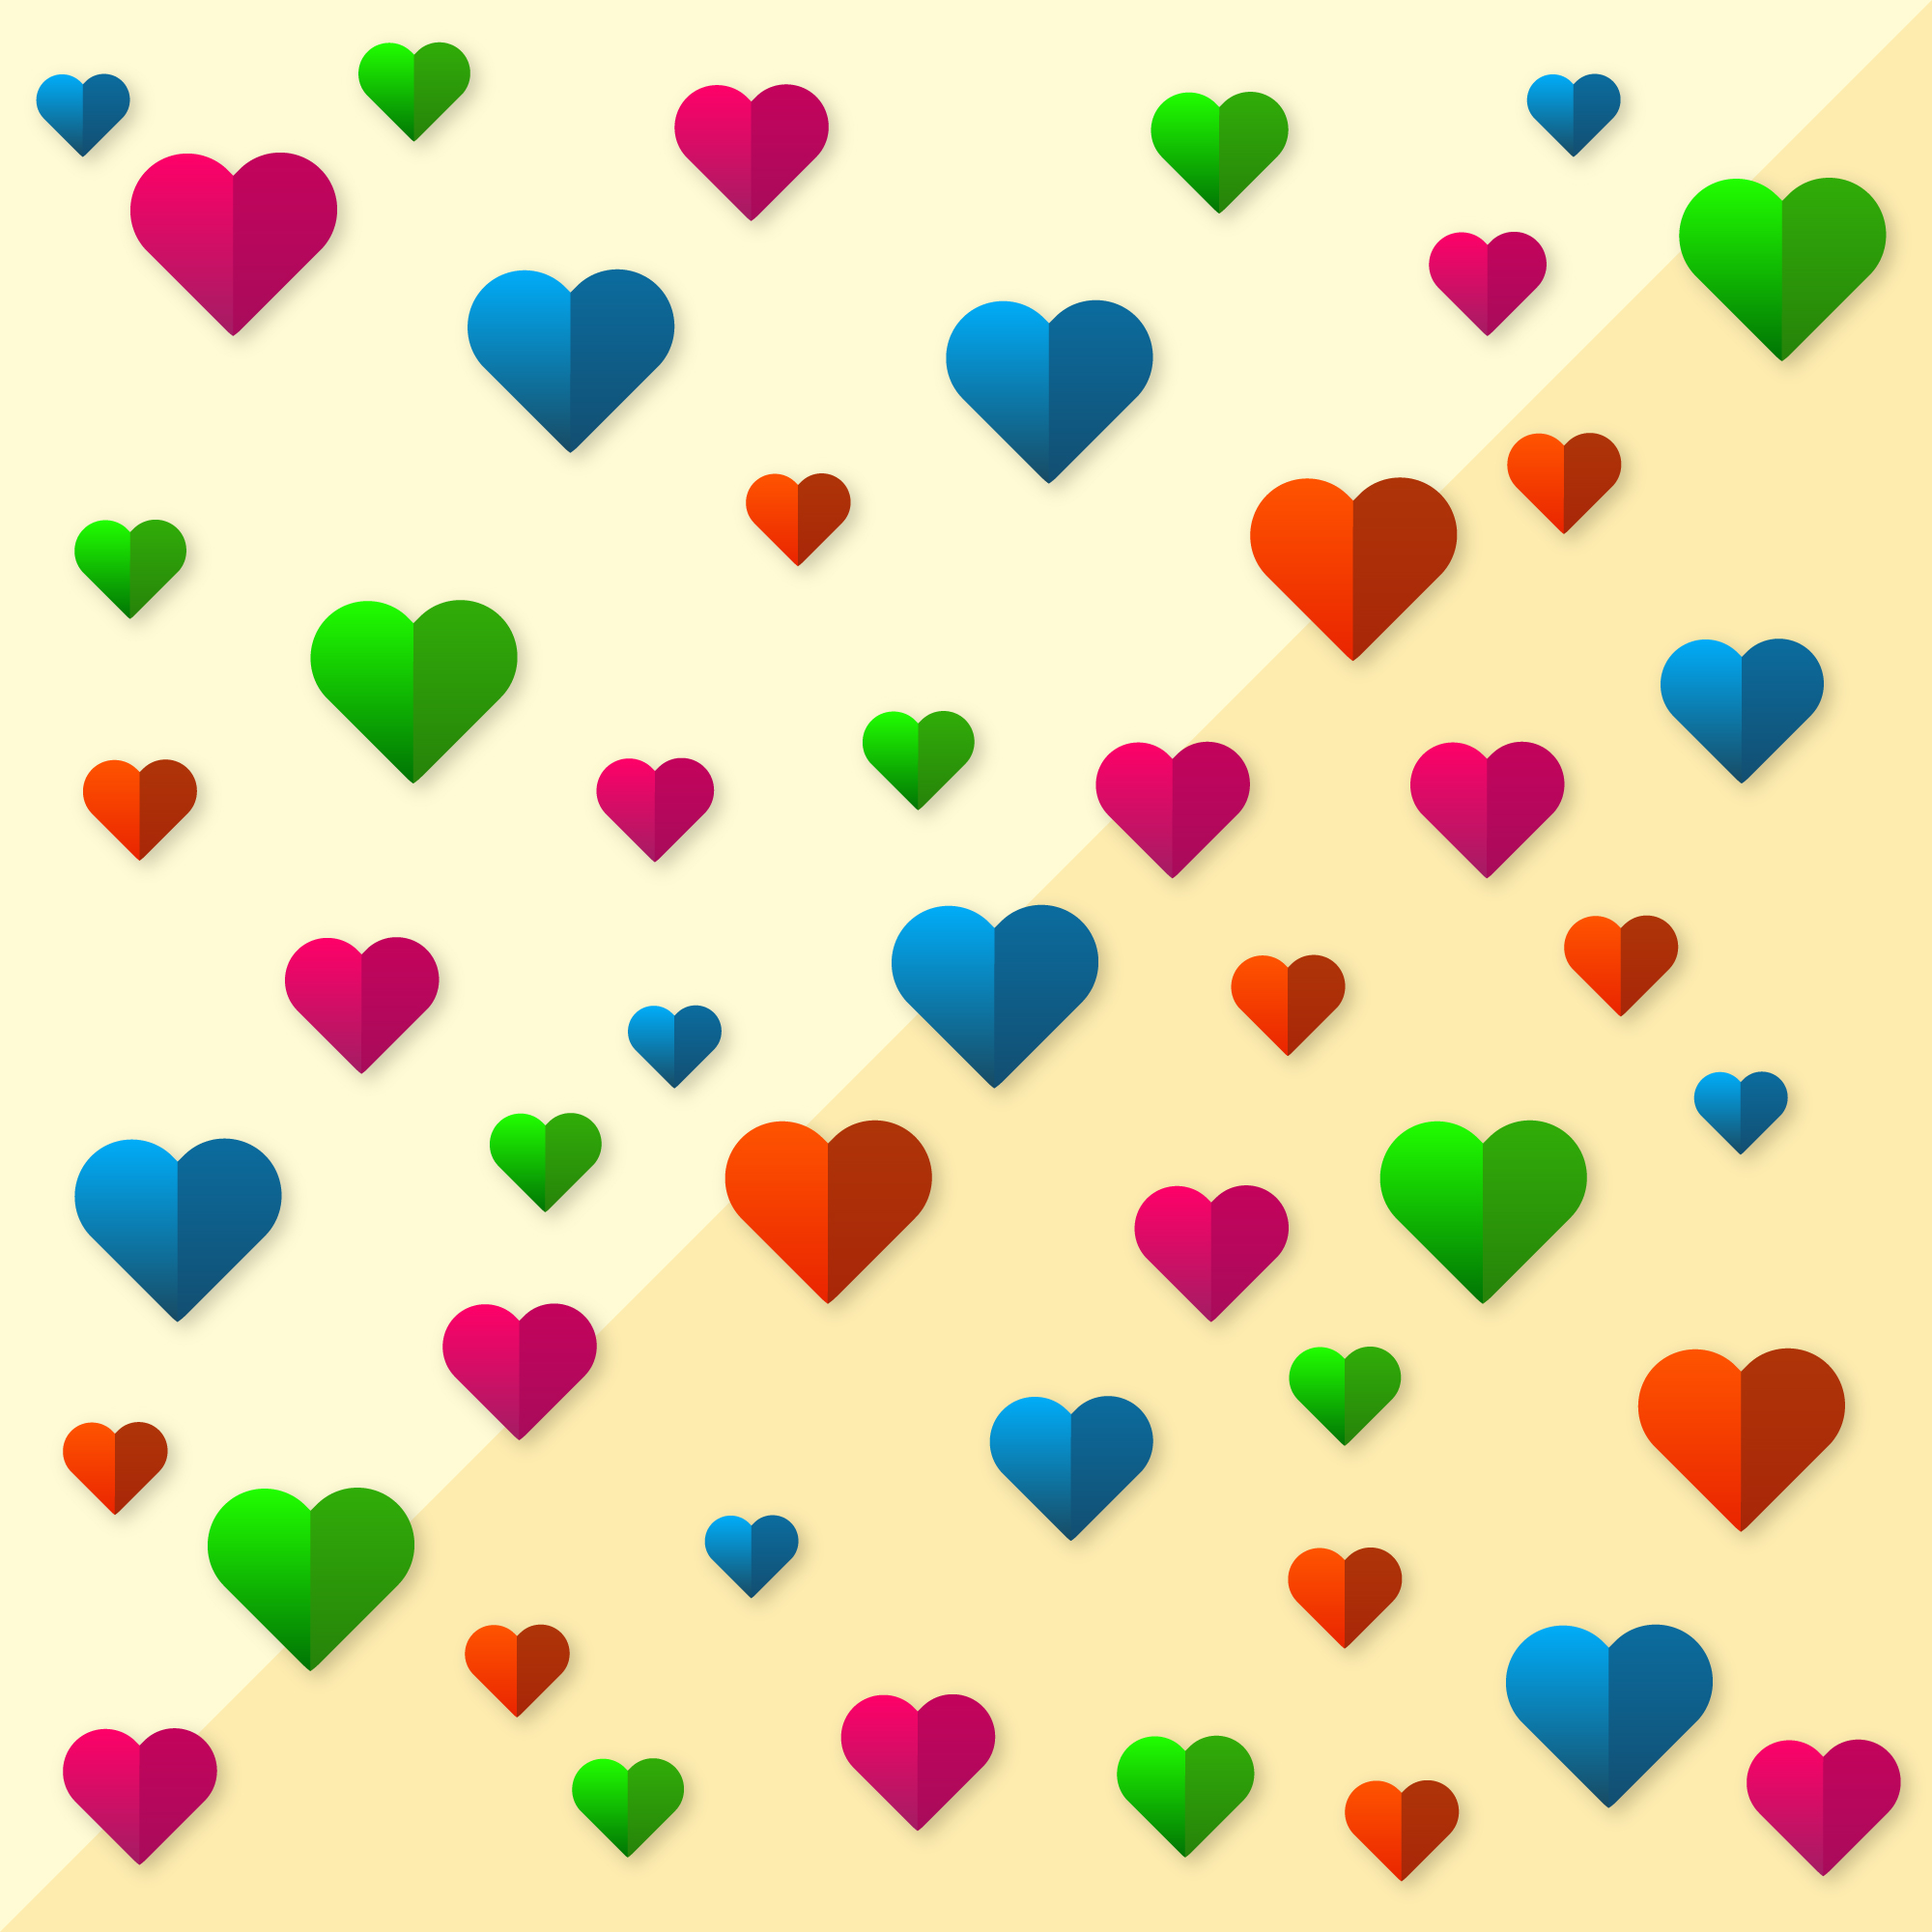 Hearts with different colors